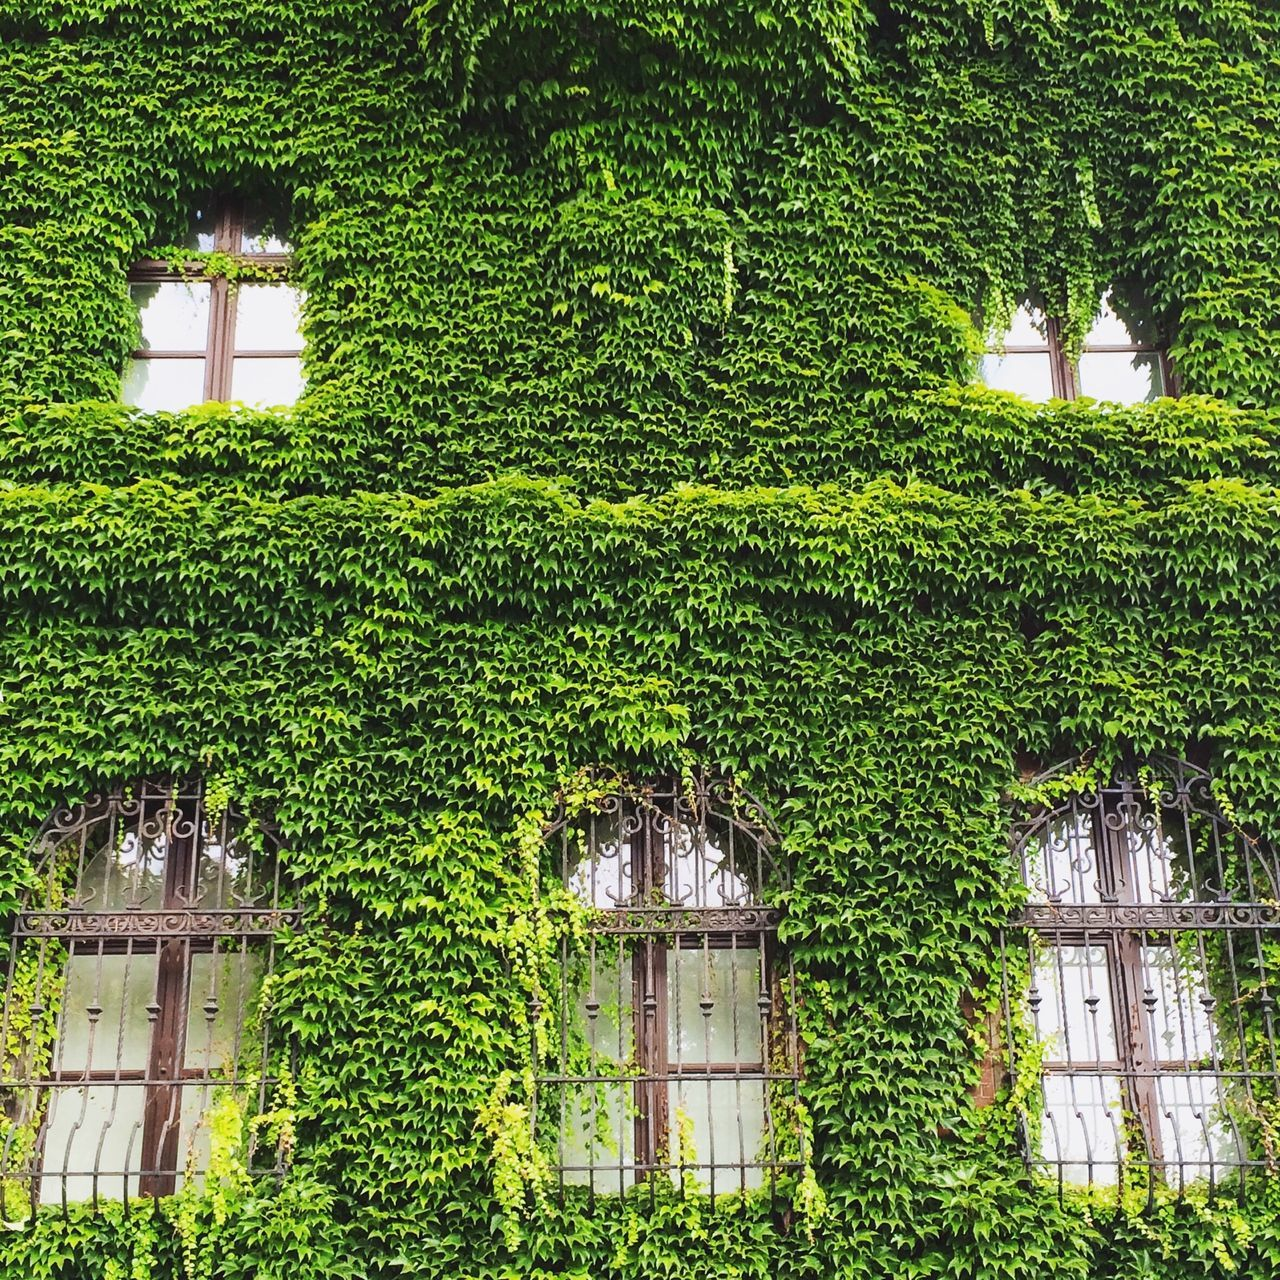 National Museum, Wrocław, Poland. Photo by Tom Bland. Green Color Building Exterior Ivy Creeper Plant Growth Polska Urban IPhone IPhoneography Wroclaw, Poland Wroclaw Wrocław City Europe European Capital Of Culture Architecture National Museum Poland Built Structure Green Façade Overgrown Building Museum